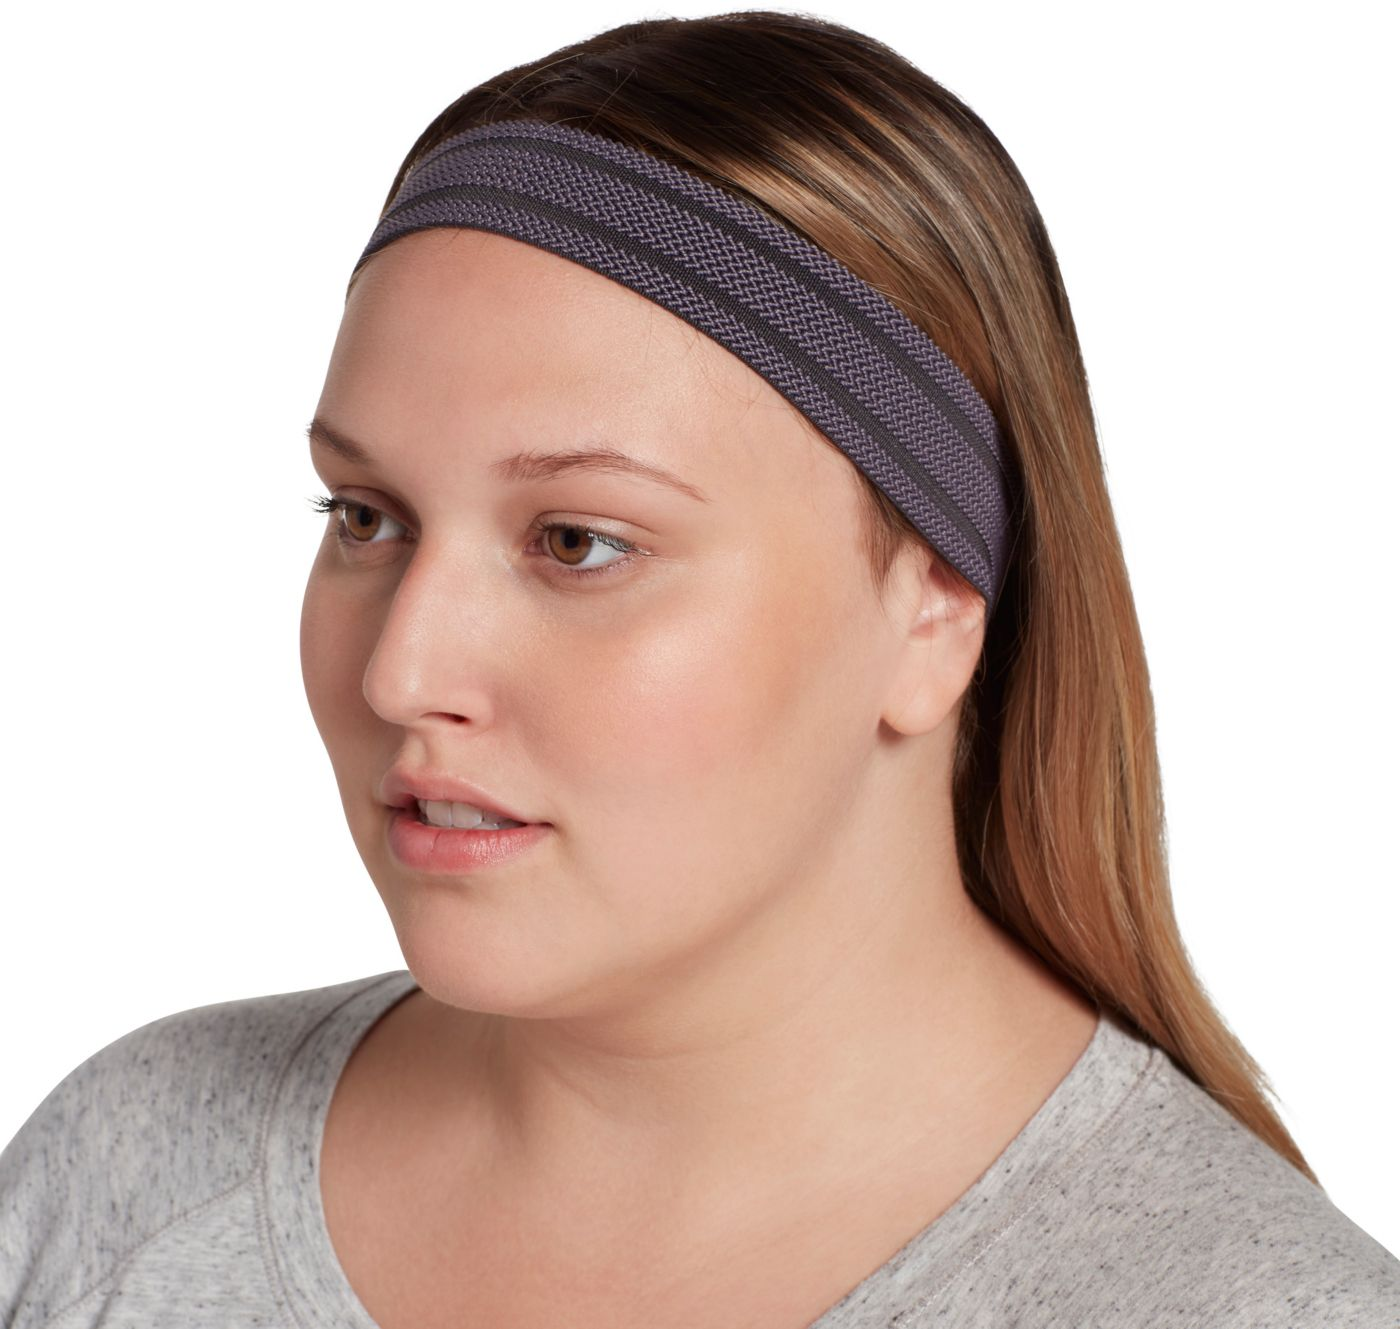 CALIA by Carrie Underwood Women's Textured Stretch Headband